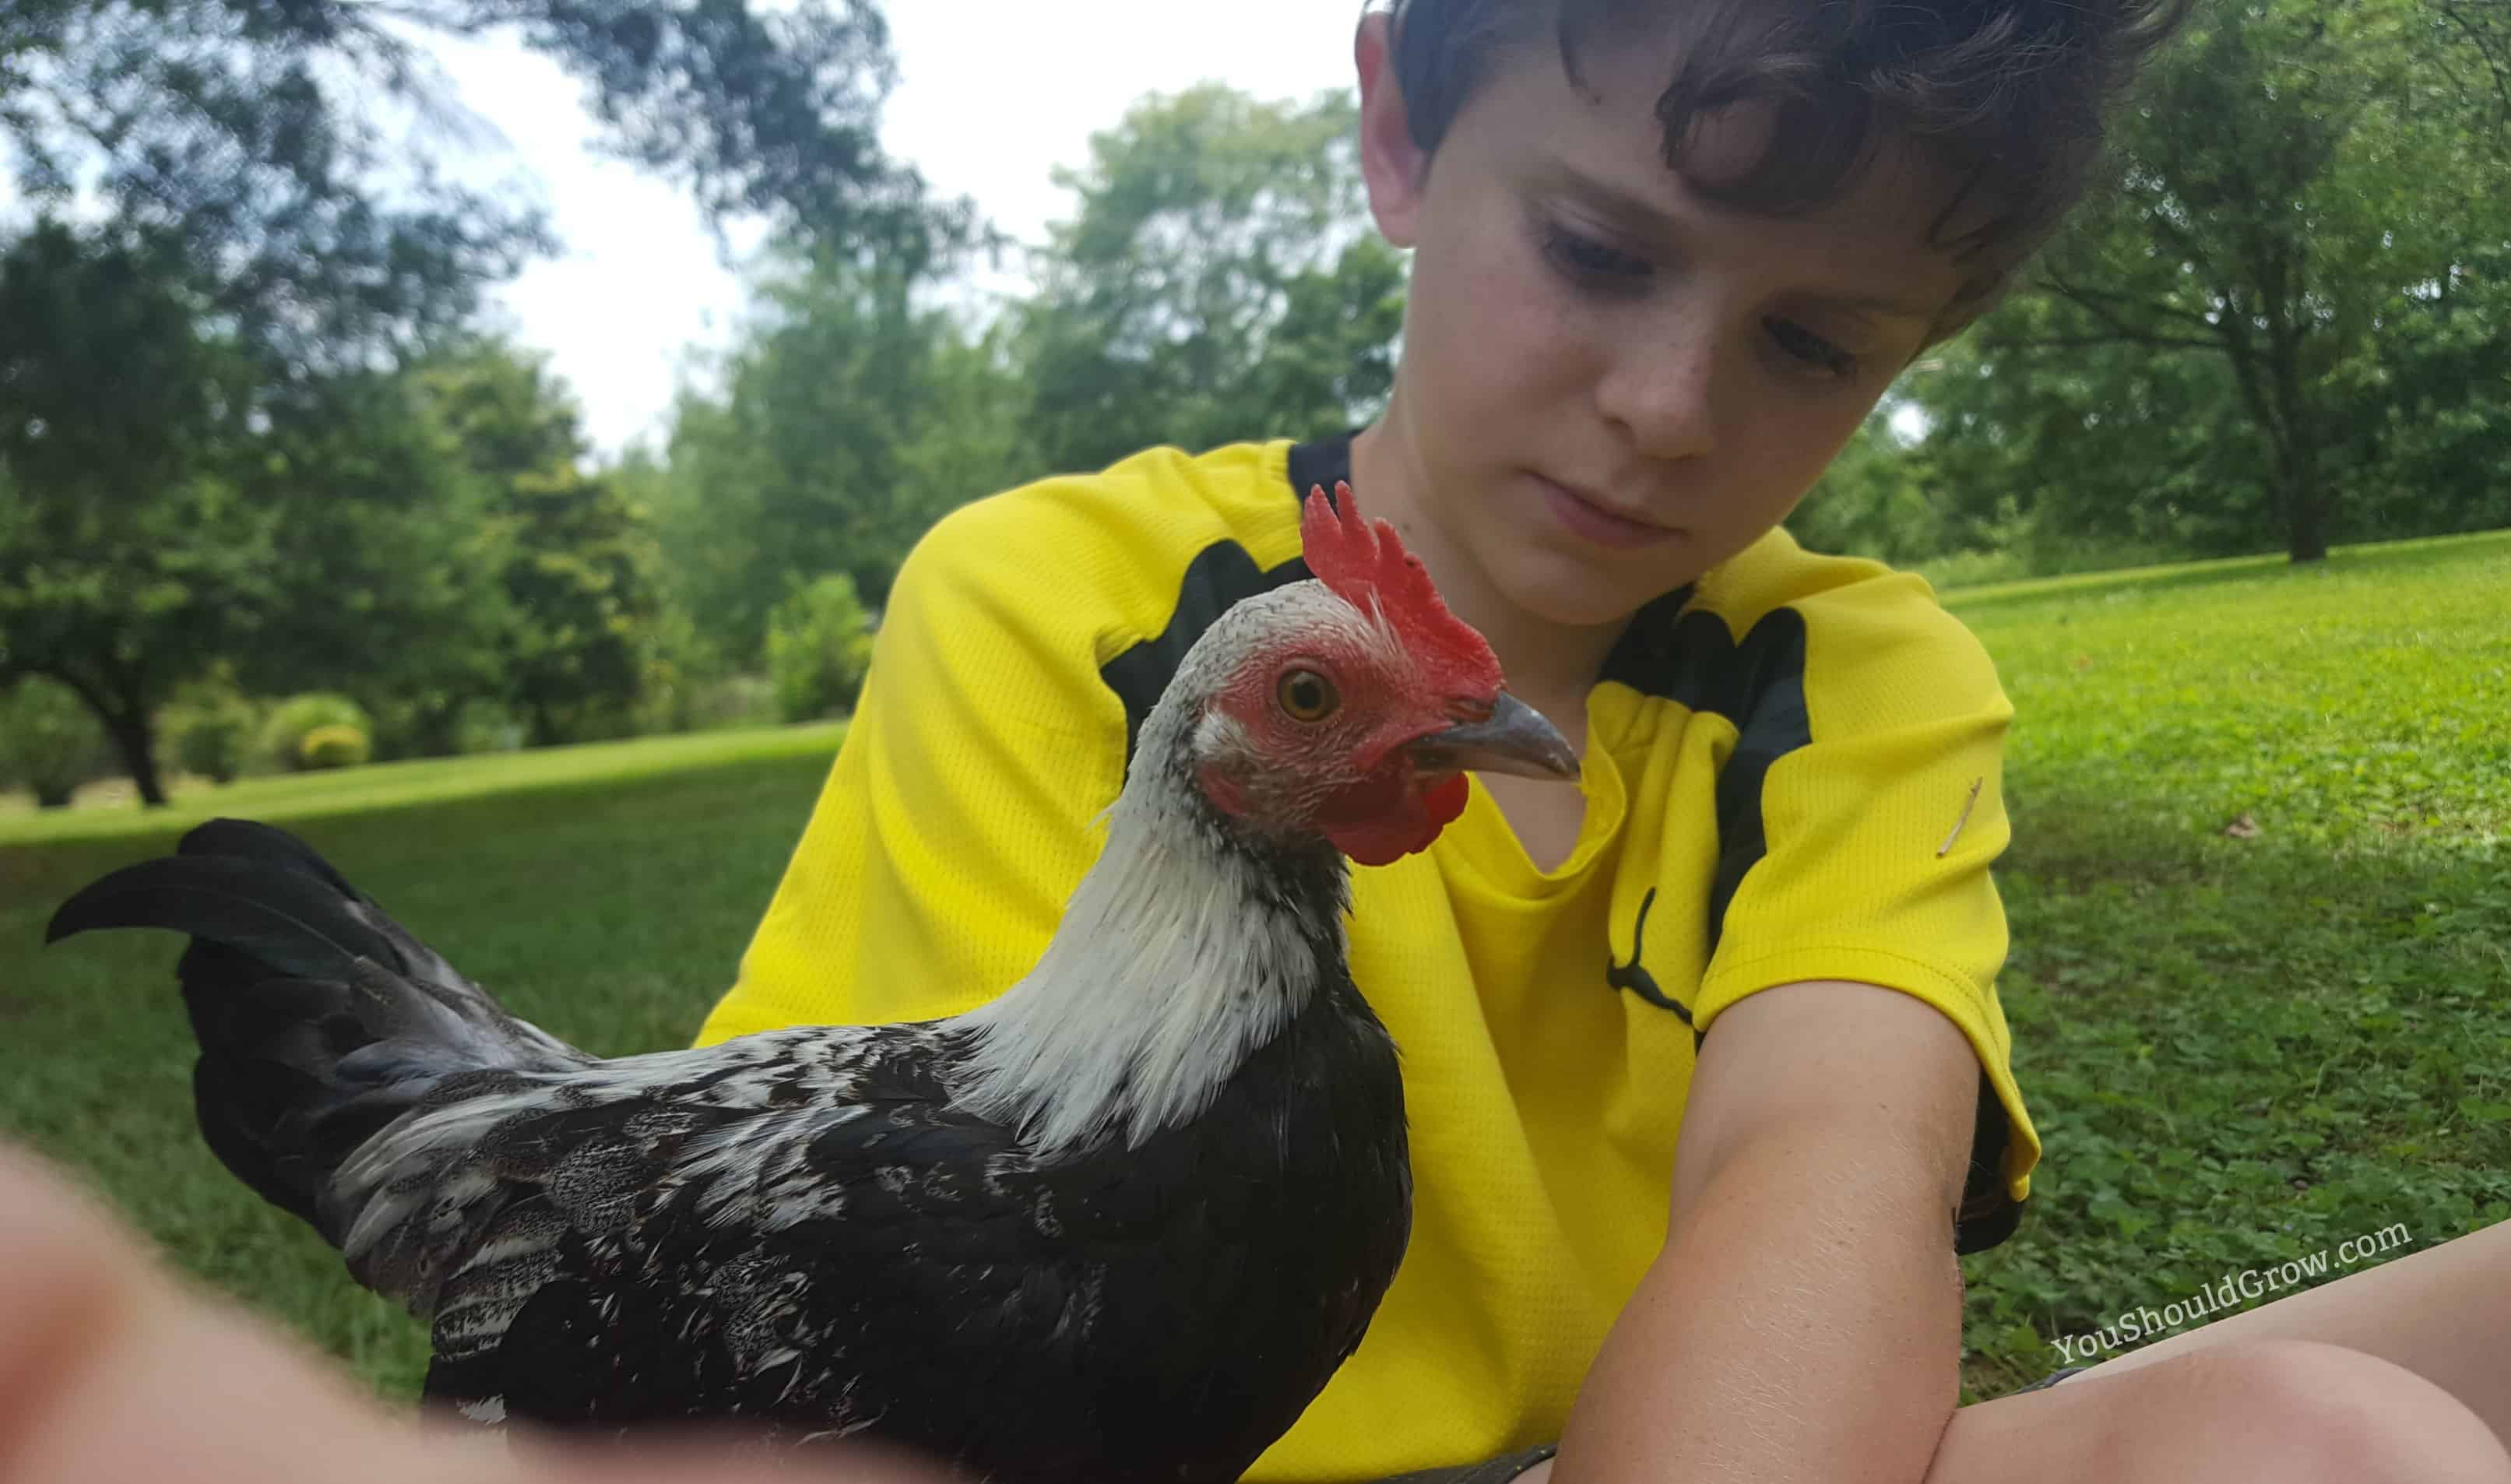 Adding chickens to your homestead for fresh meat, eggs, and pleasure.